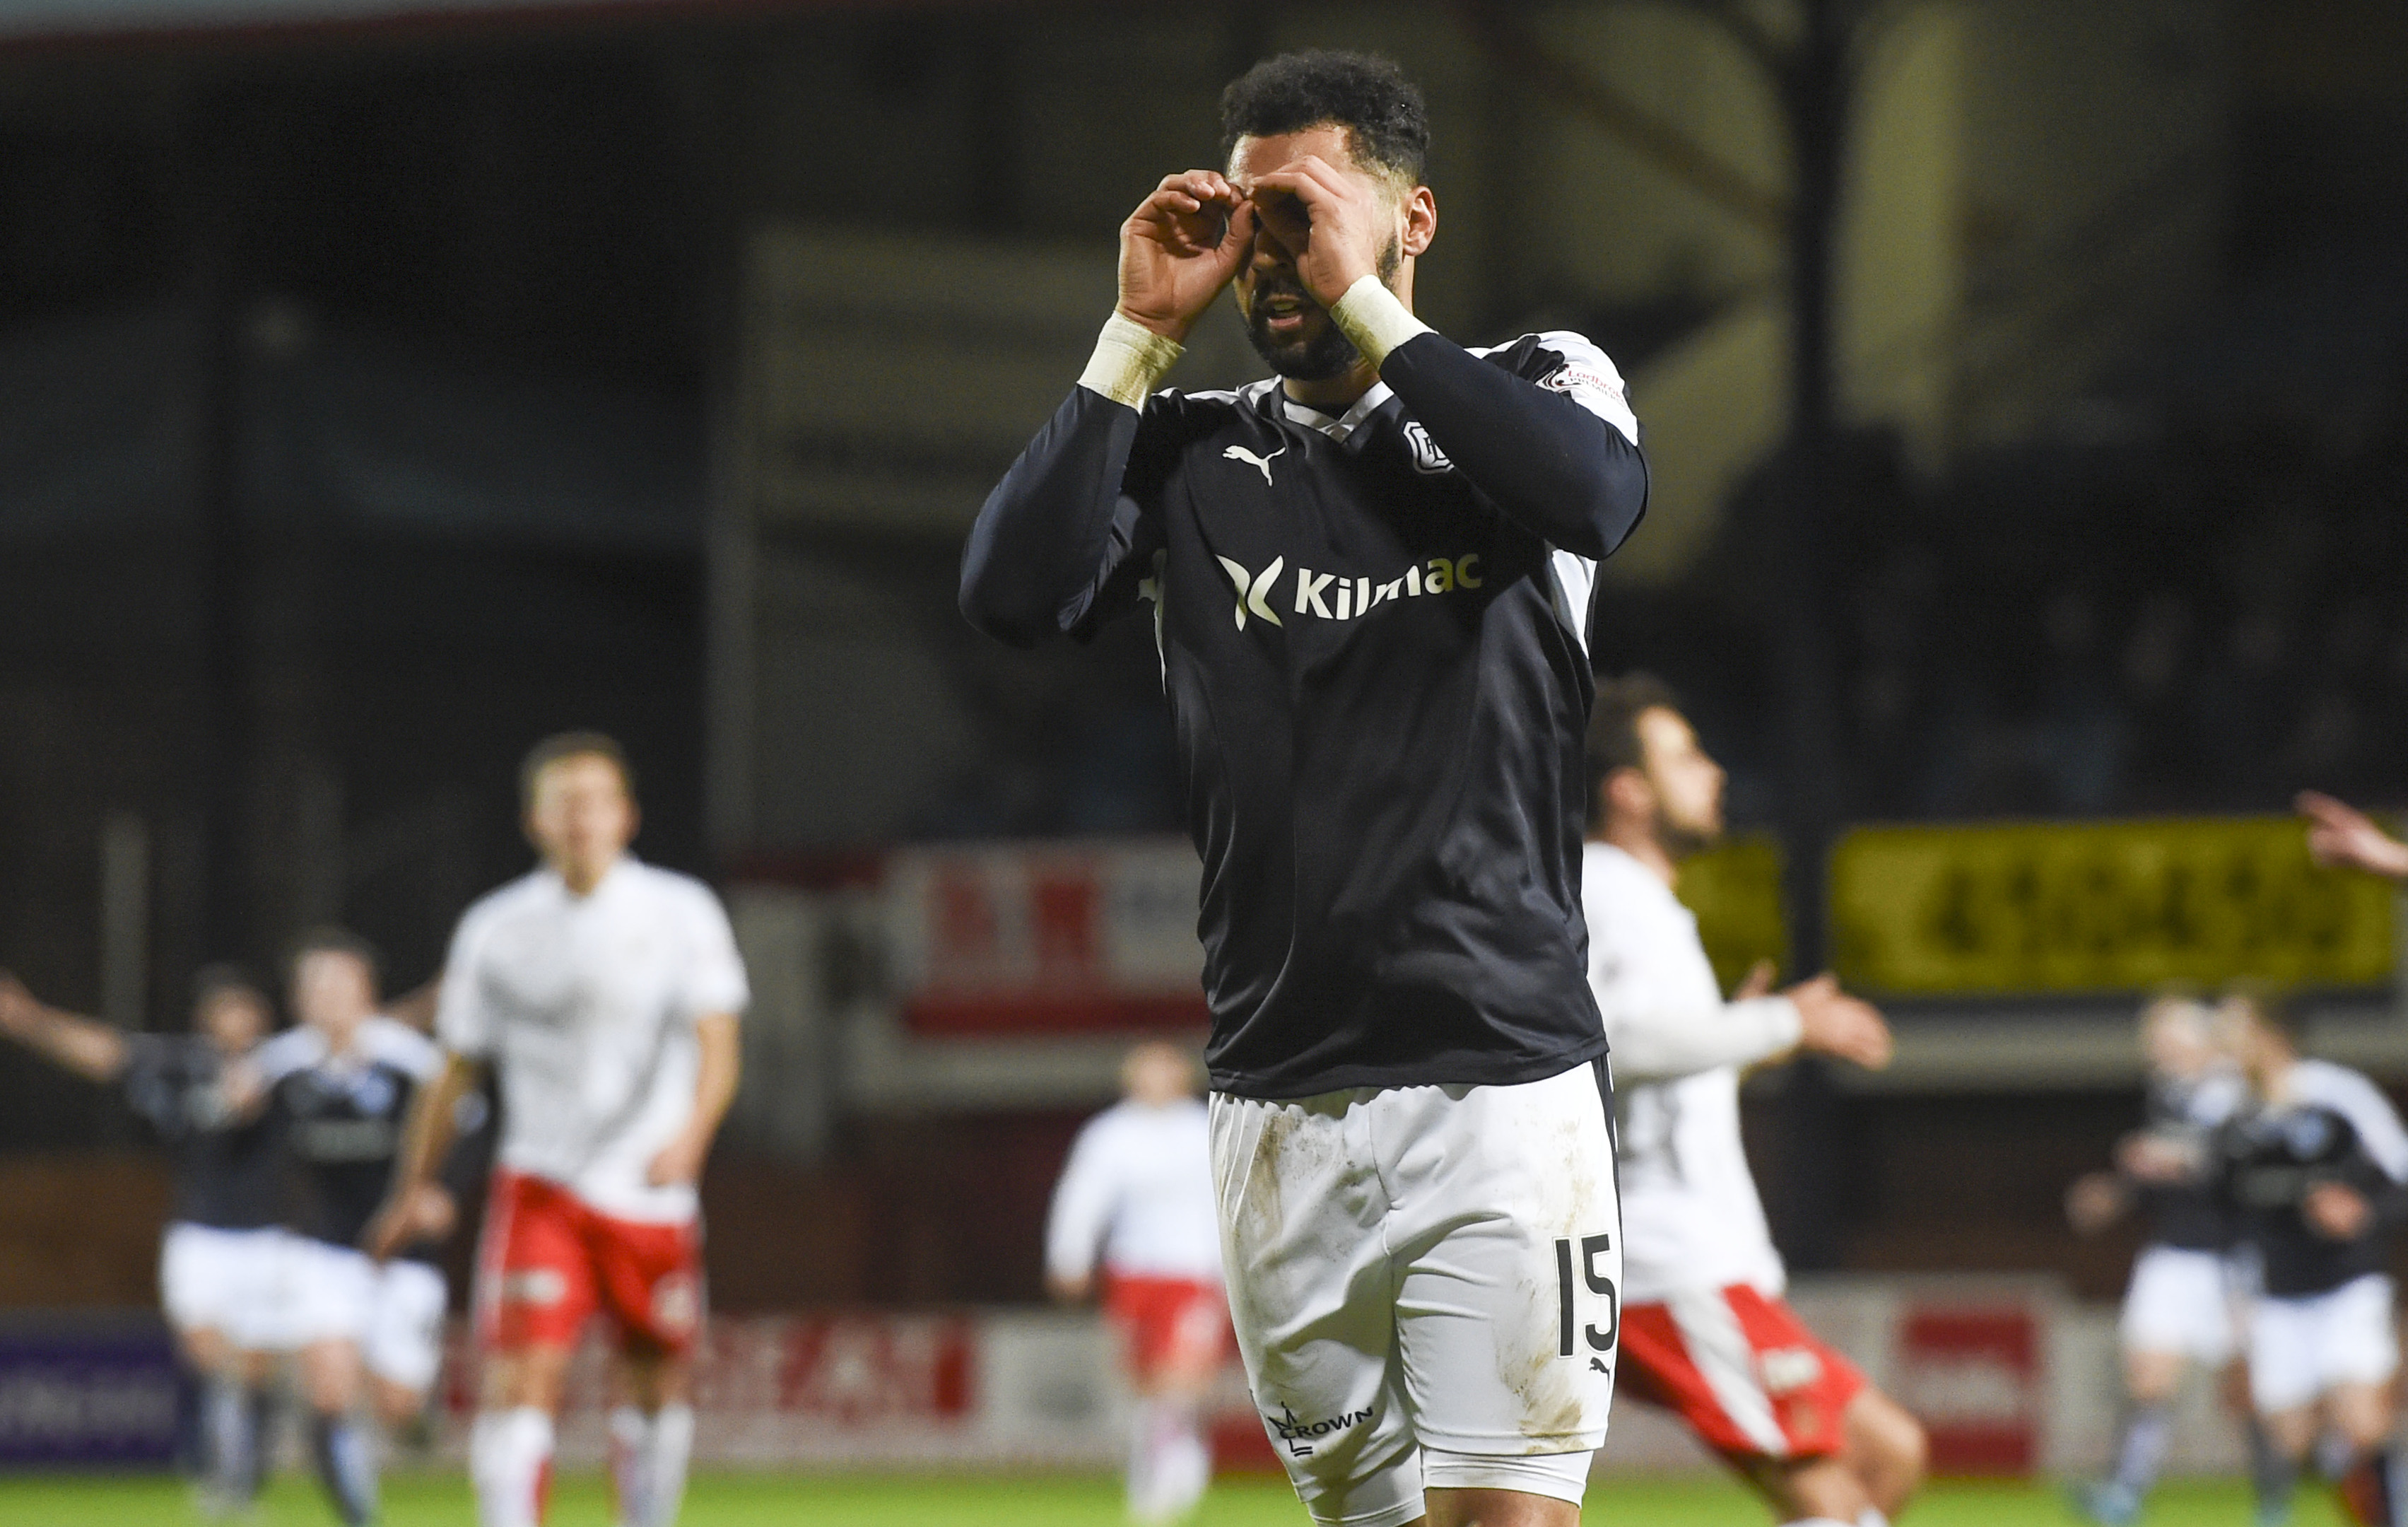 Dundee striker Kane Hemmings' two goals in last night's 3-1 Scottish Cup fourth-round win over Falkirk made it nine in his last six games.